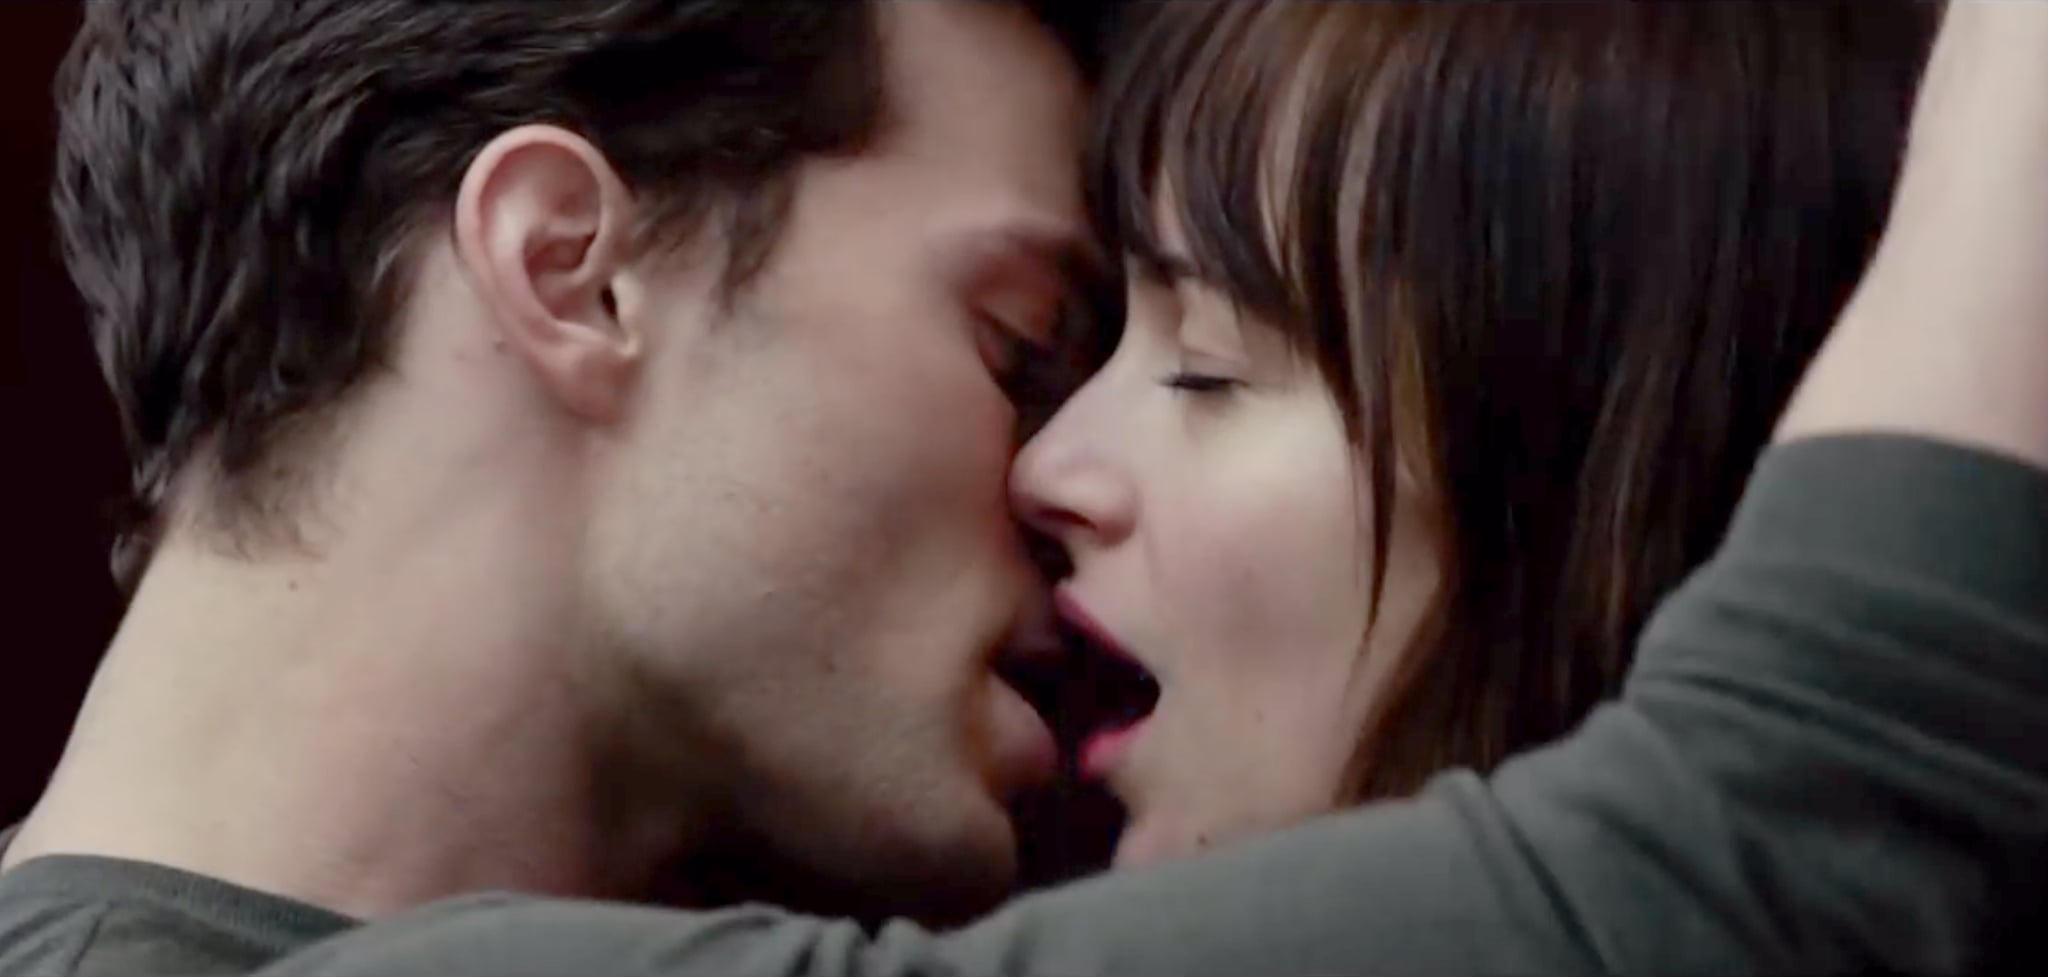 50 shades of grey sex excerpts popsugar love uk share this link